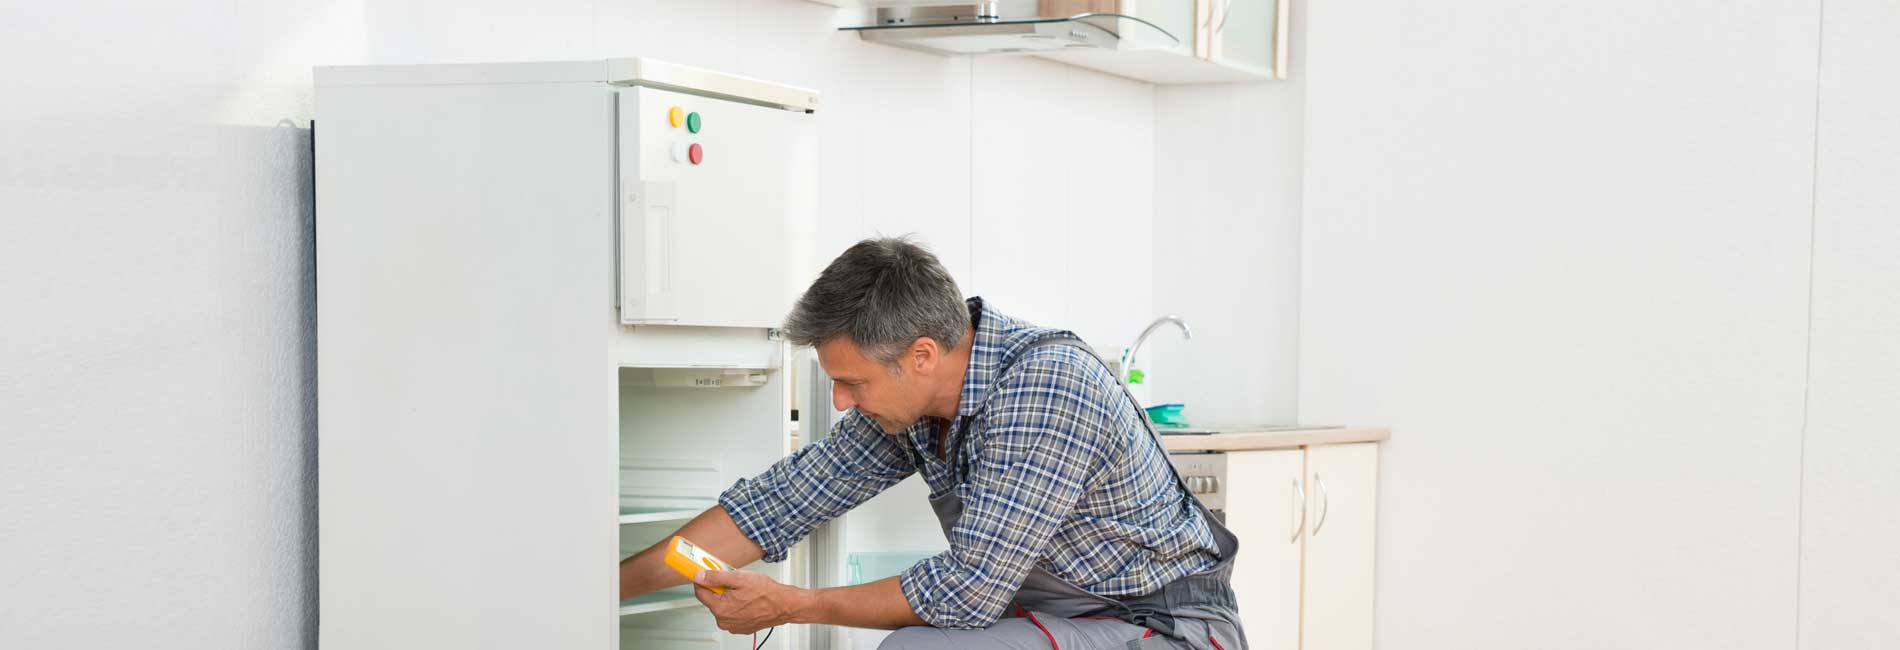 Whirlpool Fridge Repair in Mangadu